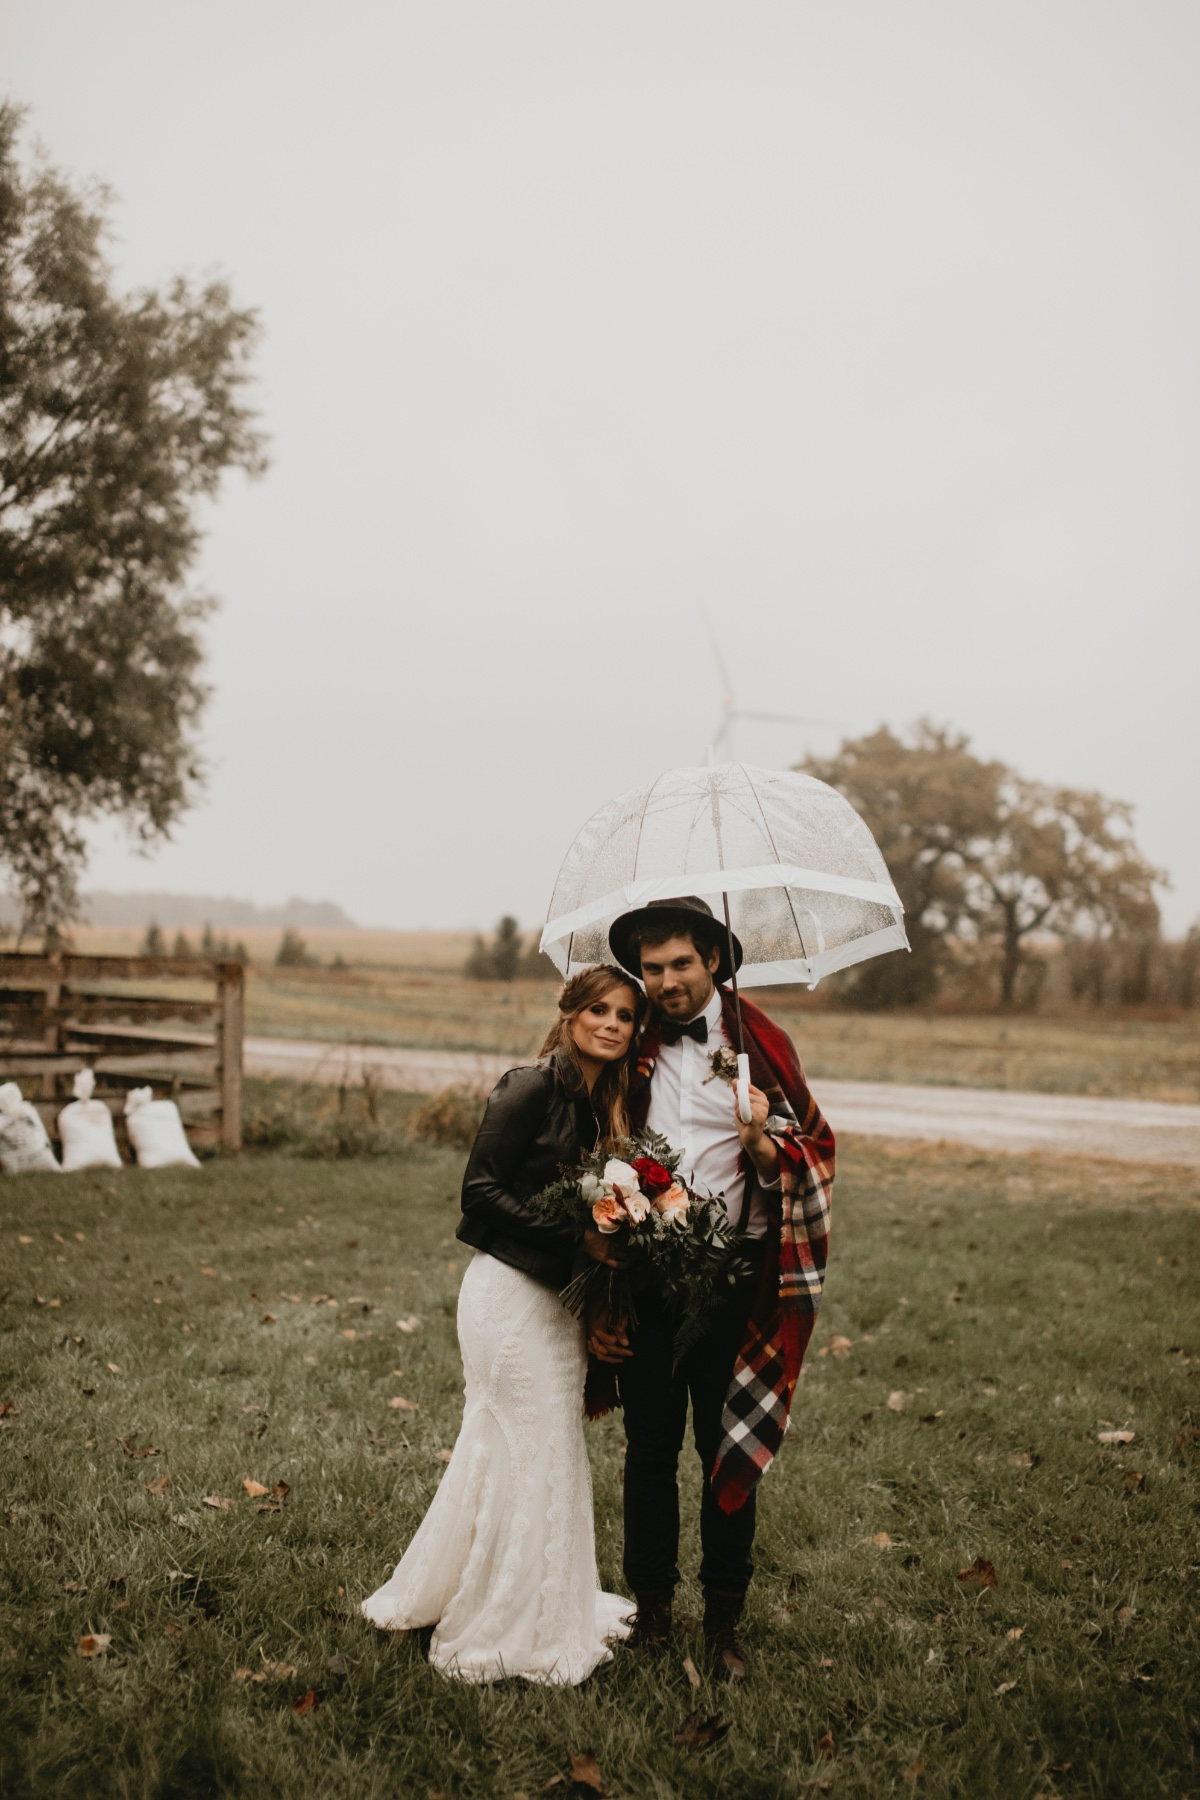 Fall wedding ideas in the rain